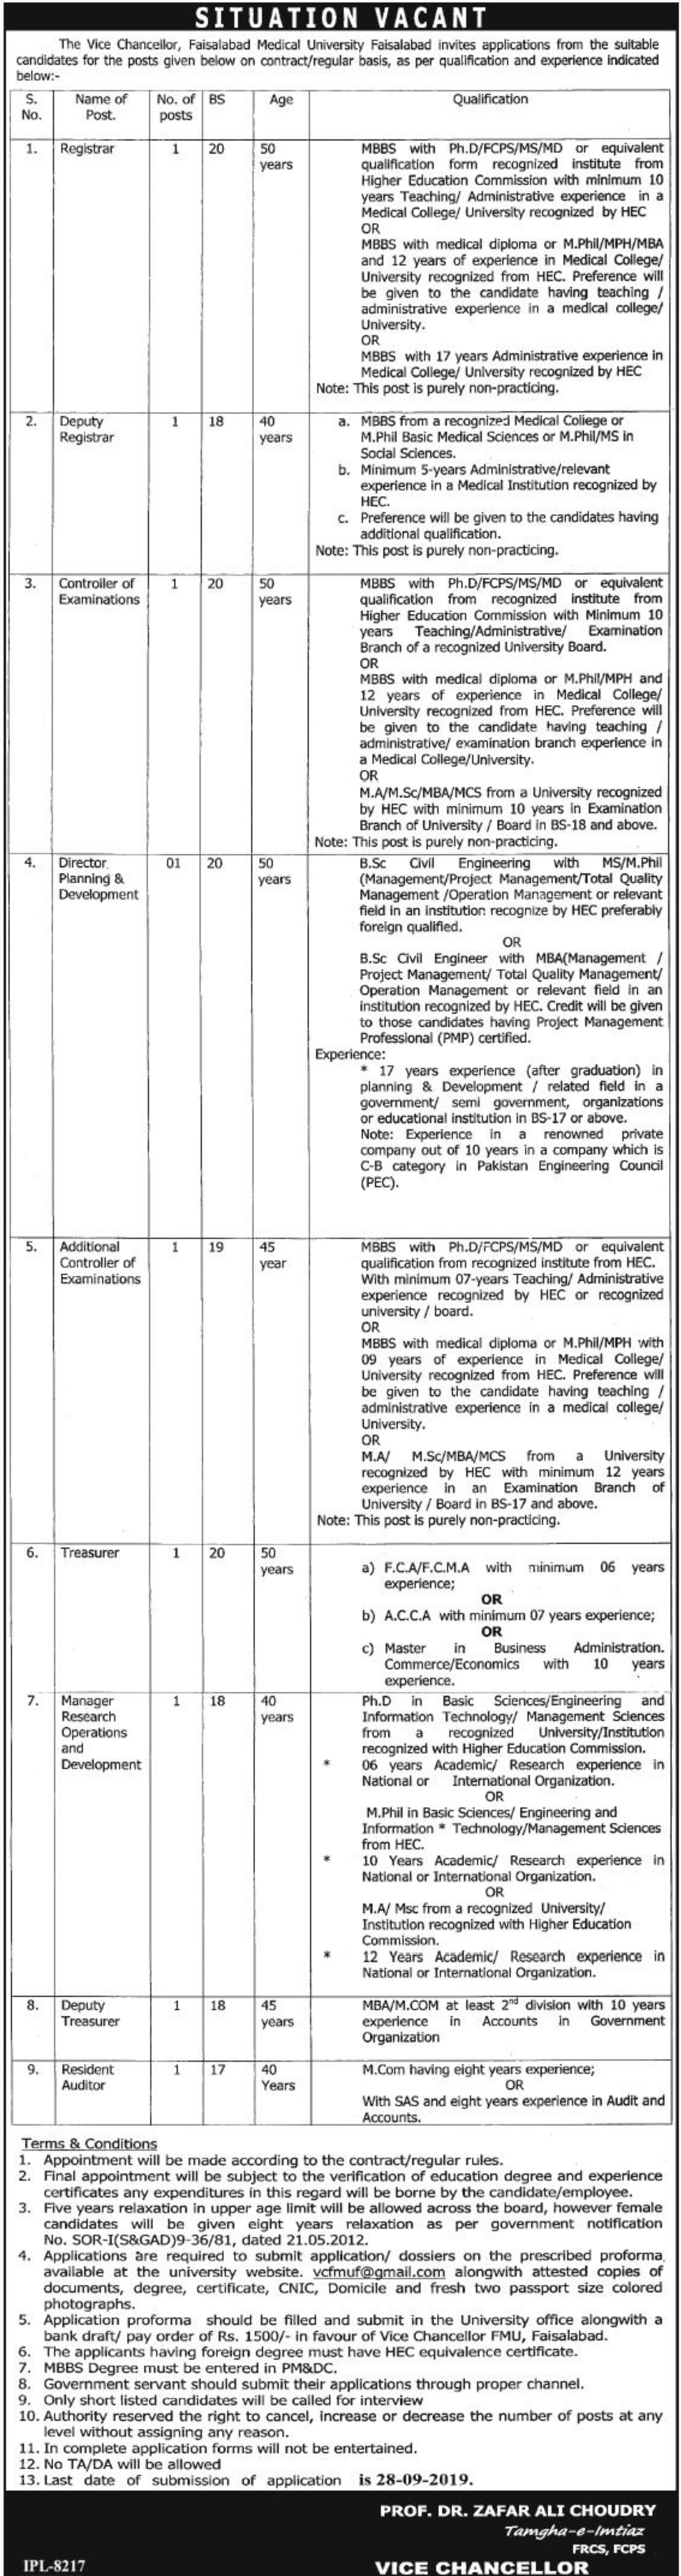 Faisalabad Medical University Jobs 2019 Application Form